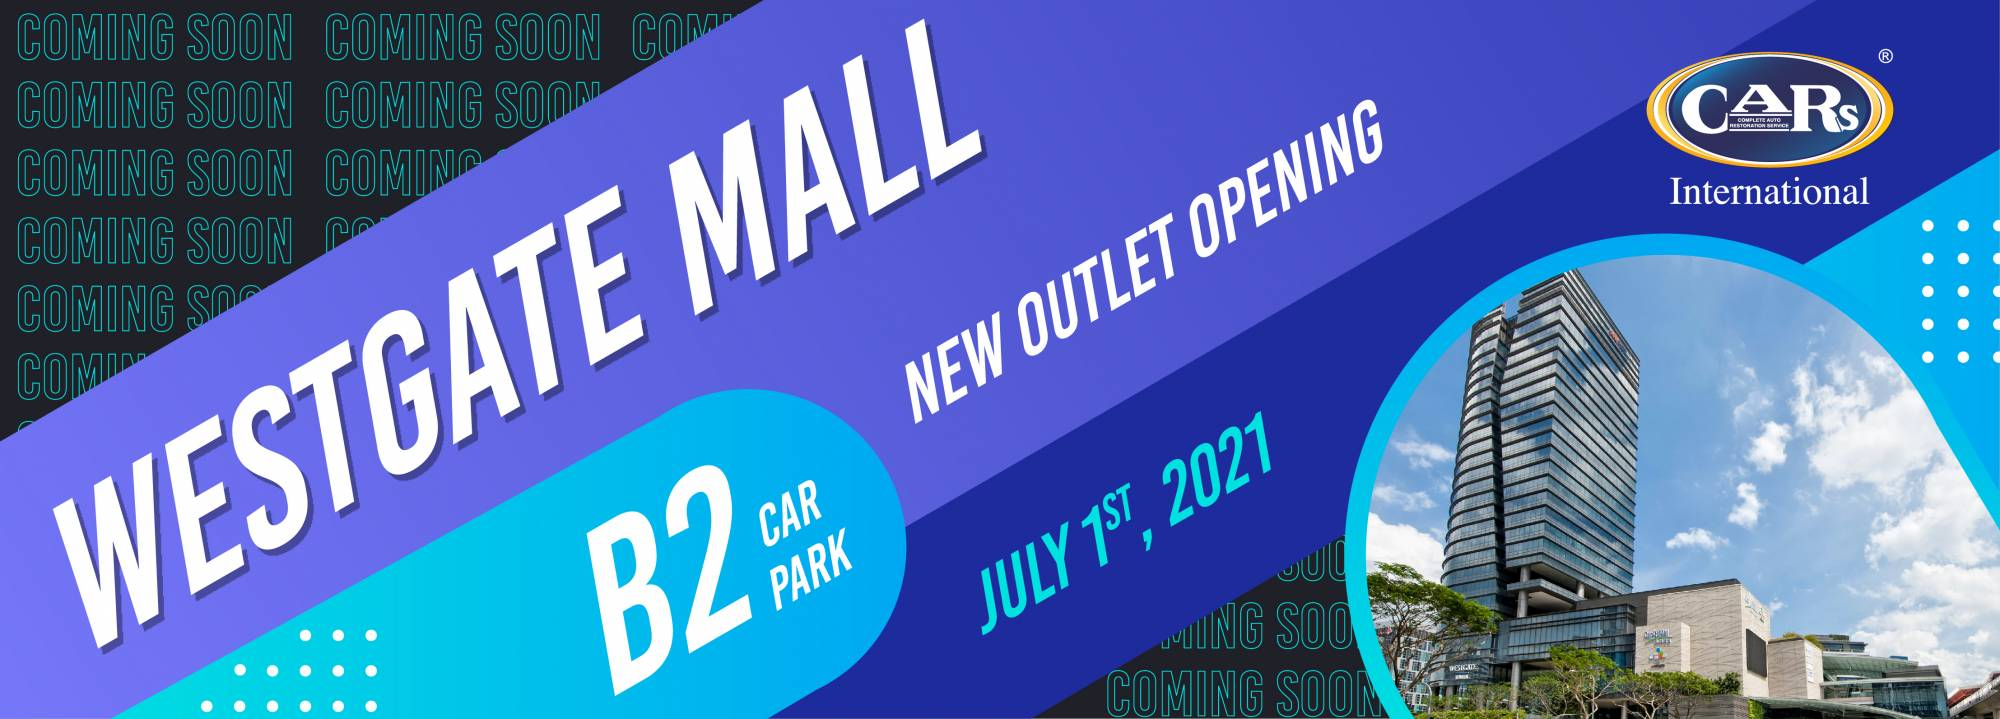 WESTGATE MALL OPENING SOON!